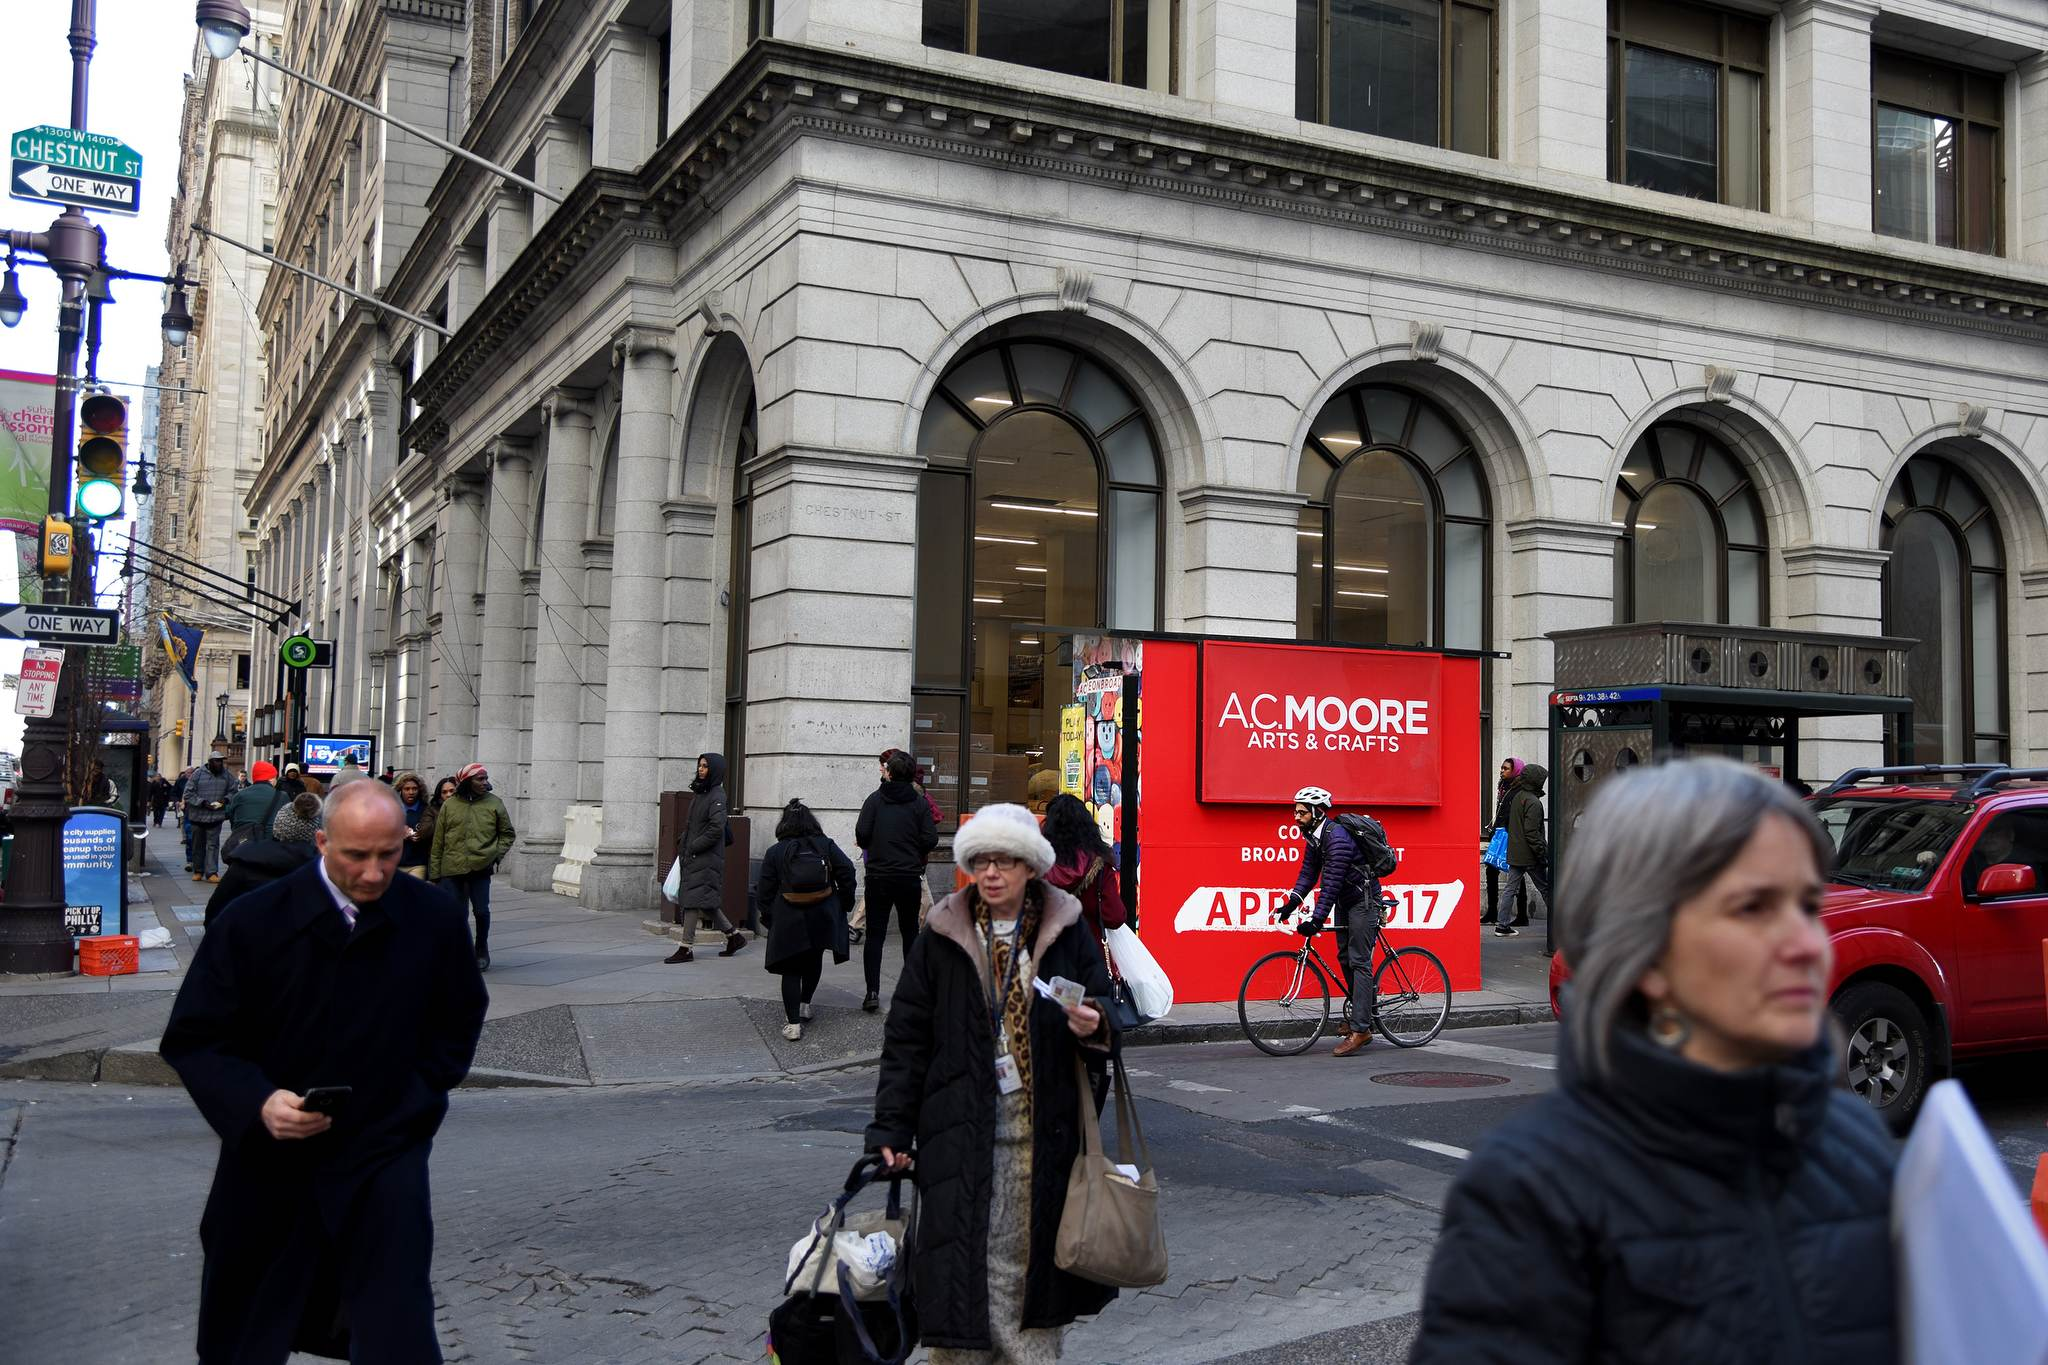 Arts and crafts firm a c moore to open first center city for Ac moore and crafts